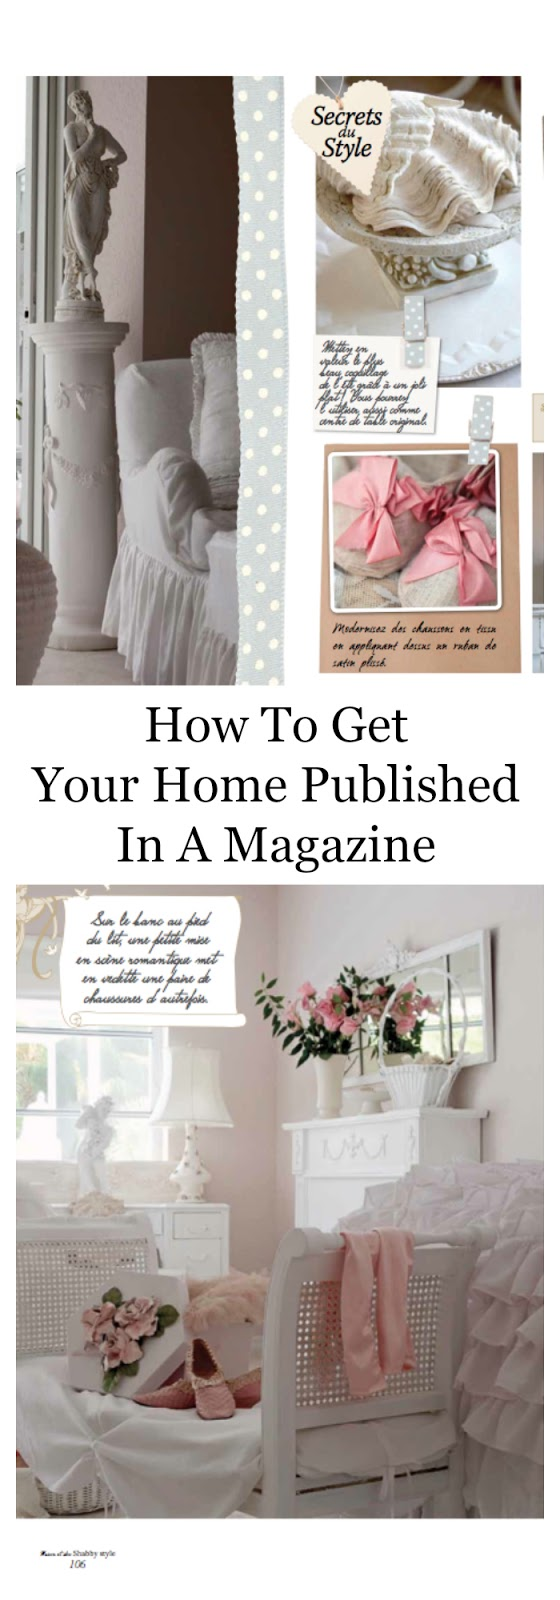 How To Get Your Home Published In A Magazine